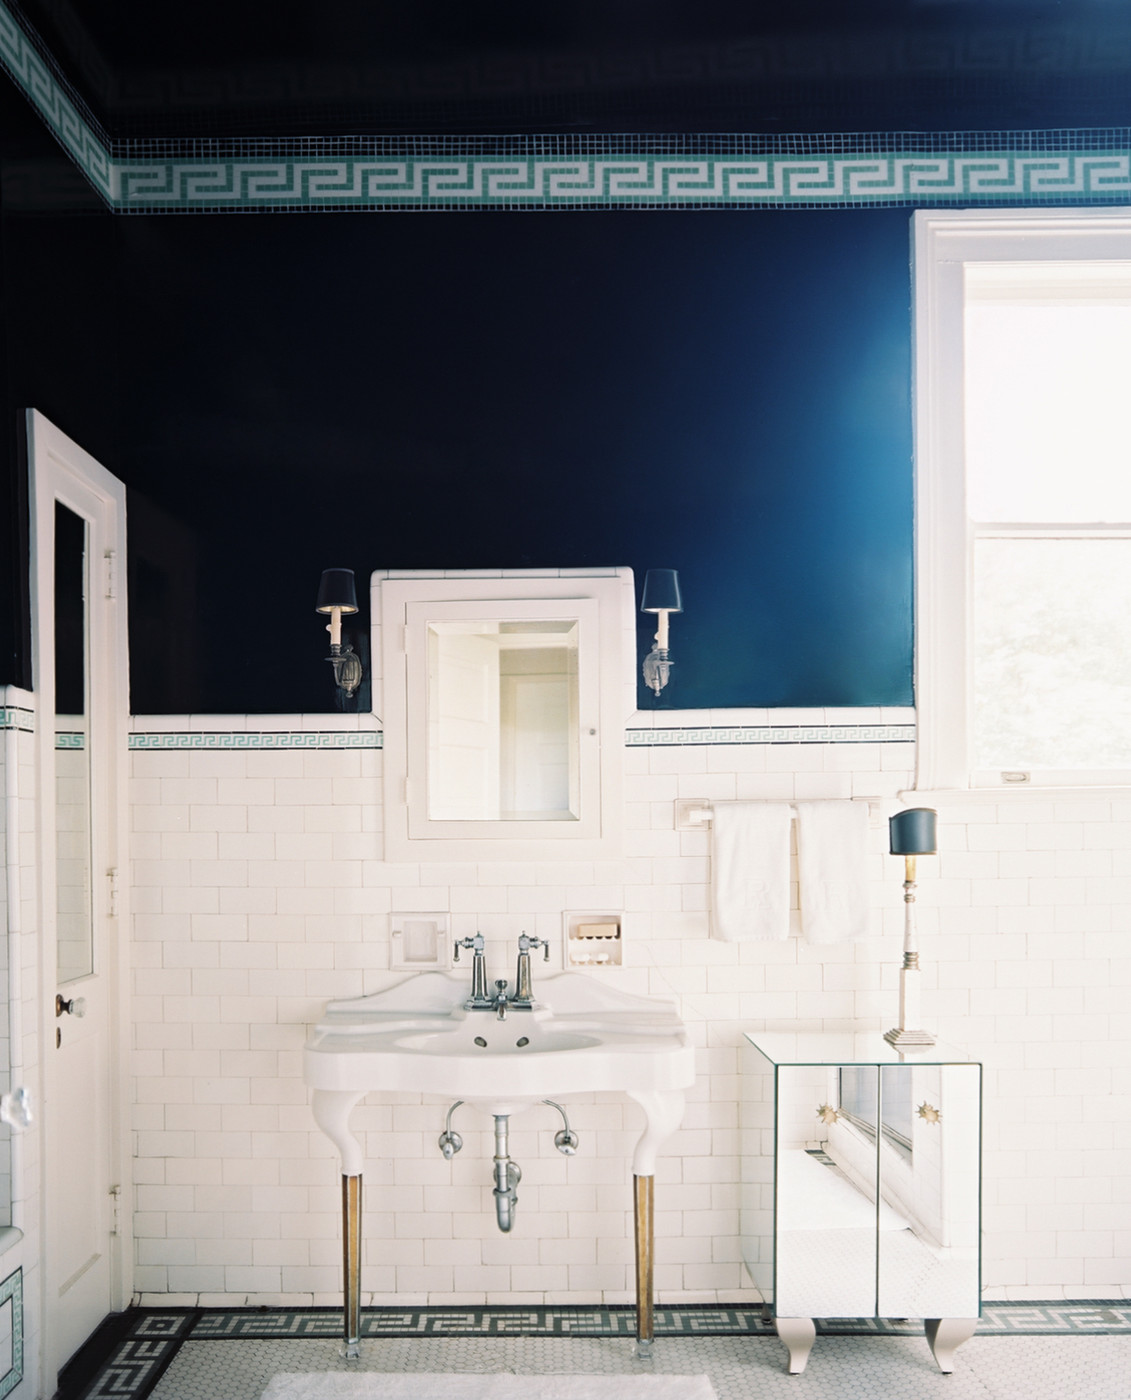 Black and white and blue bathroom - Black And White And Blue Bathroom 42